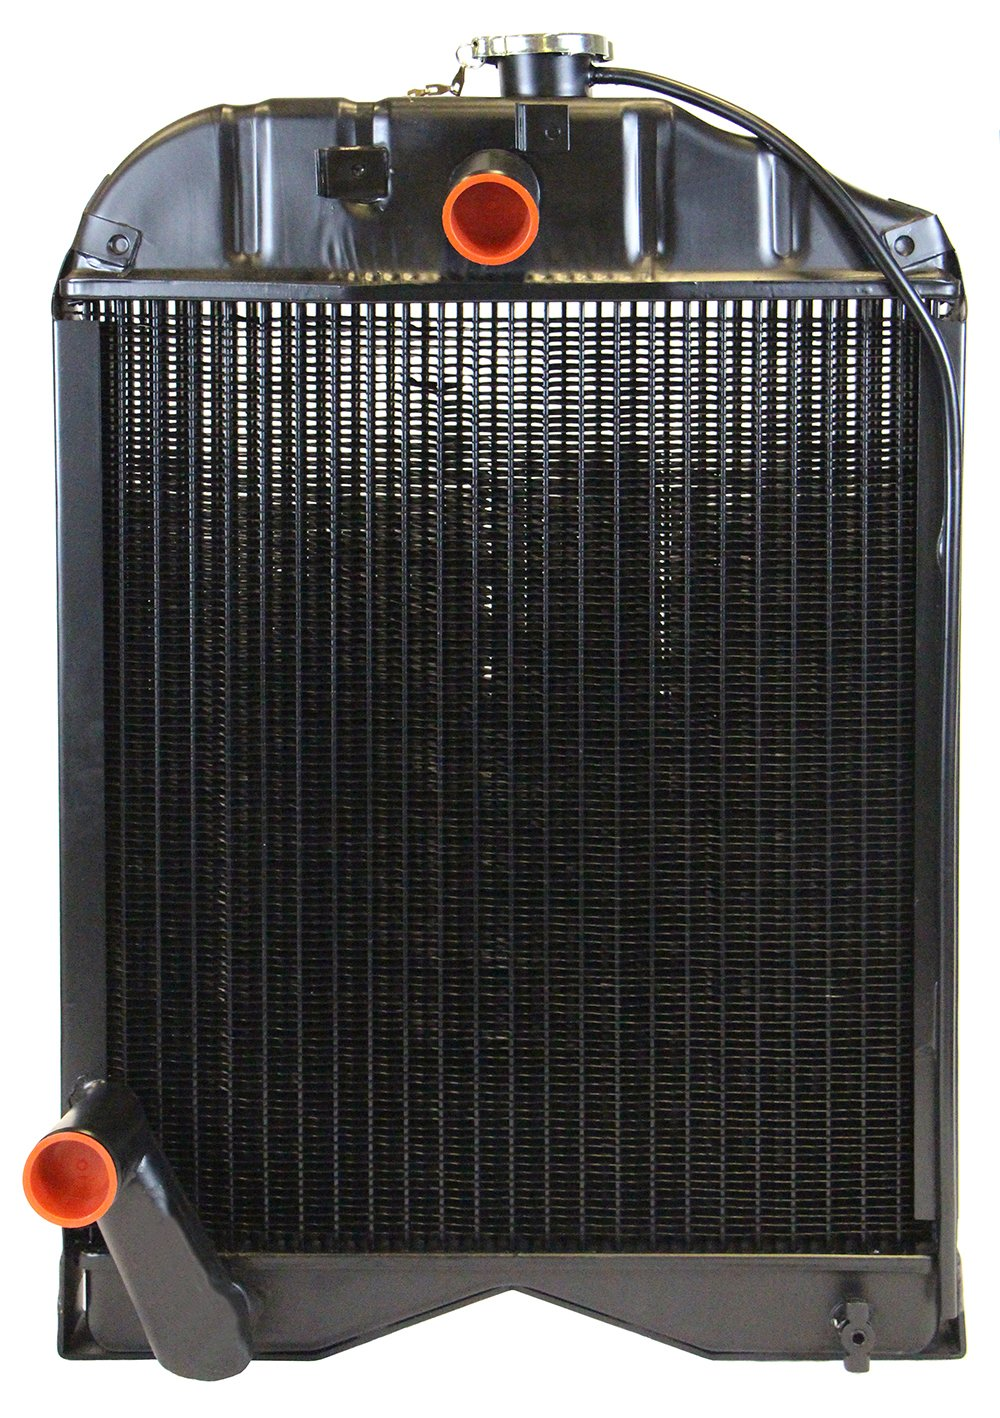 NEW Replacement Radiator 181623M91 for Massey Ferguson TEA20 TE20 TO20 TO30 TO35 Gas 35 202 (23987AM) American Cooling Solutions